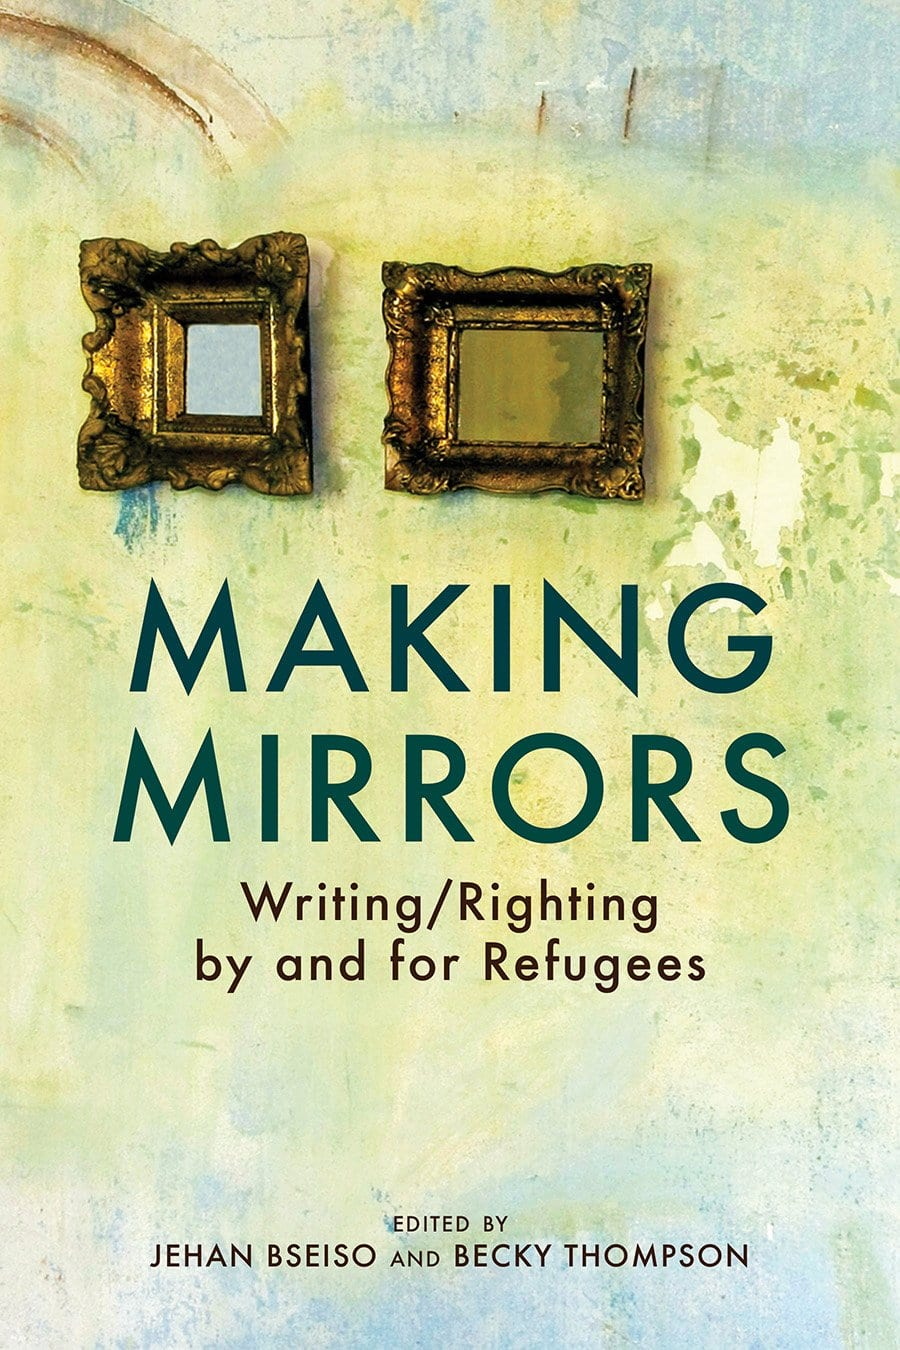 Making Mirrors: Writing/Righting by and for Refugees